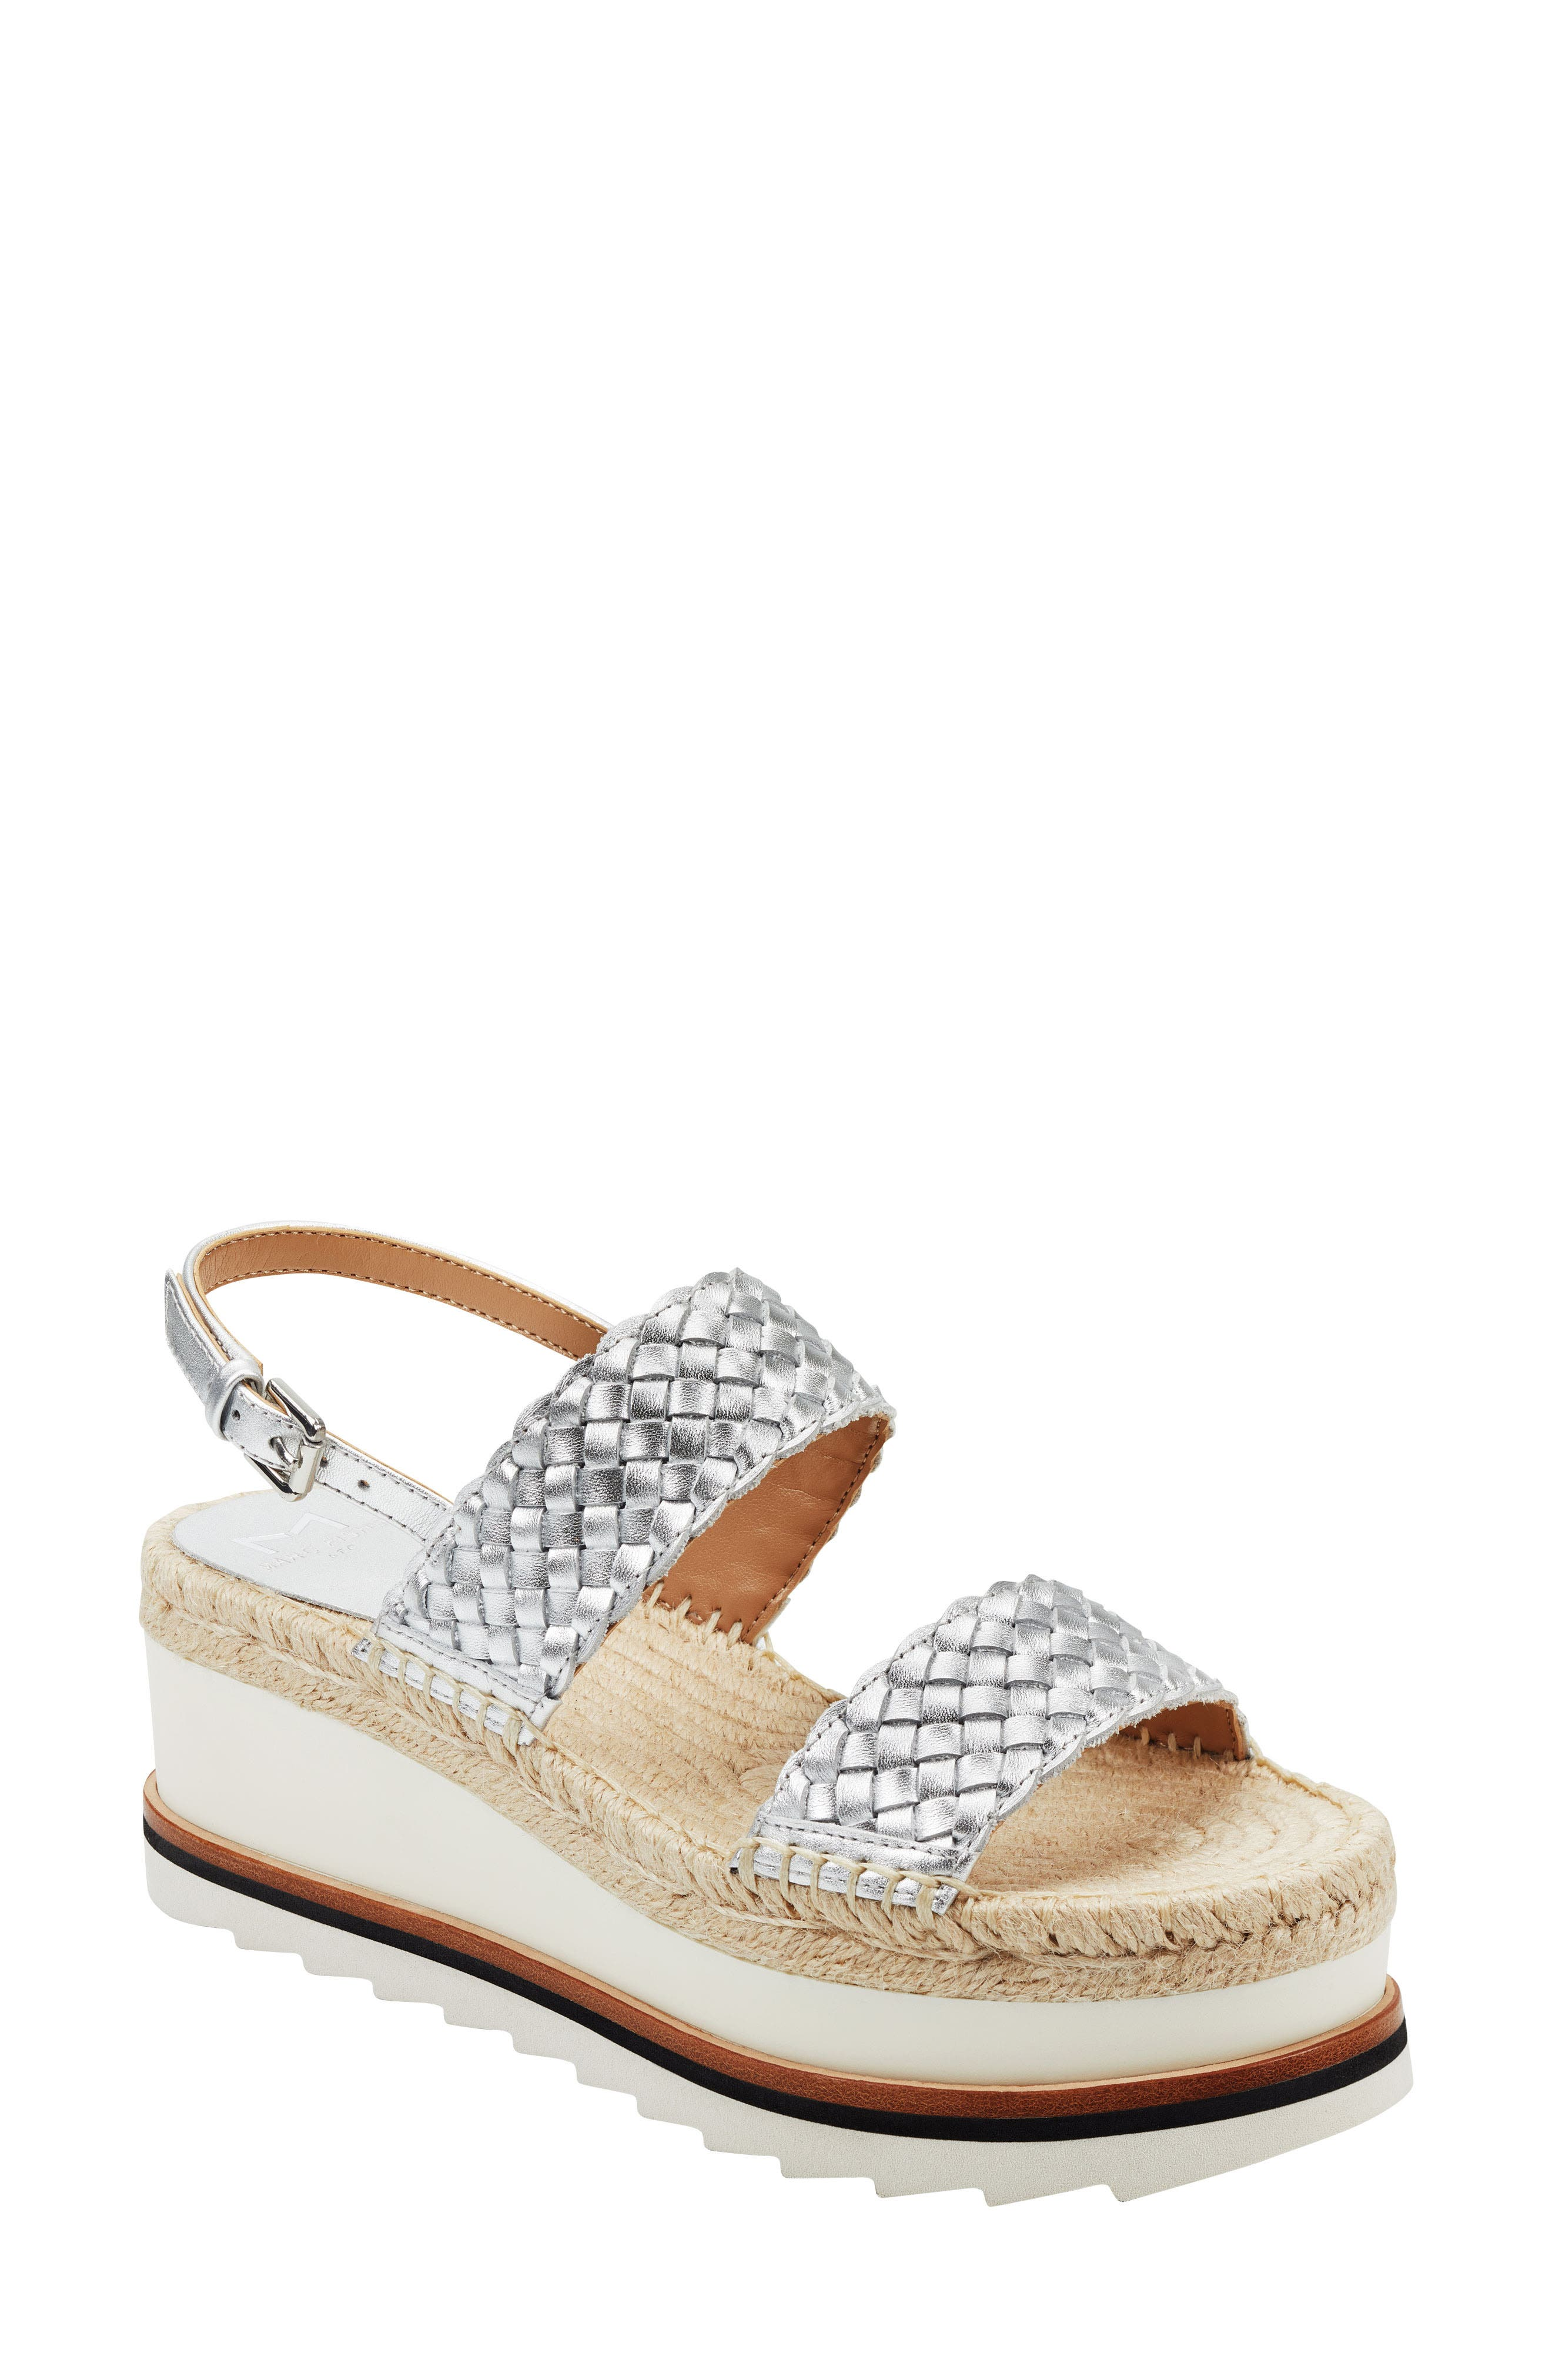 Woven straps cross the top of a breezy slingback sandal lofted by a chunky wedge and platform with an espadrille-style footbed. Style Name: Marc Fisher Ltd. Gabli Slingback Sandal (Women). Style Number: 6003555. Available in stores.